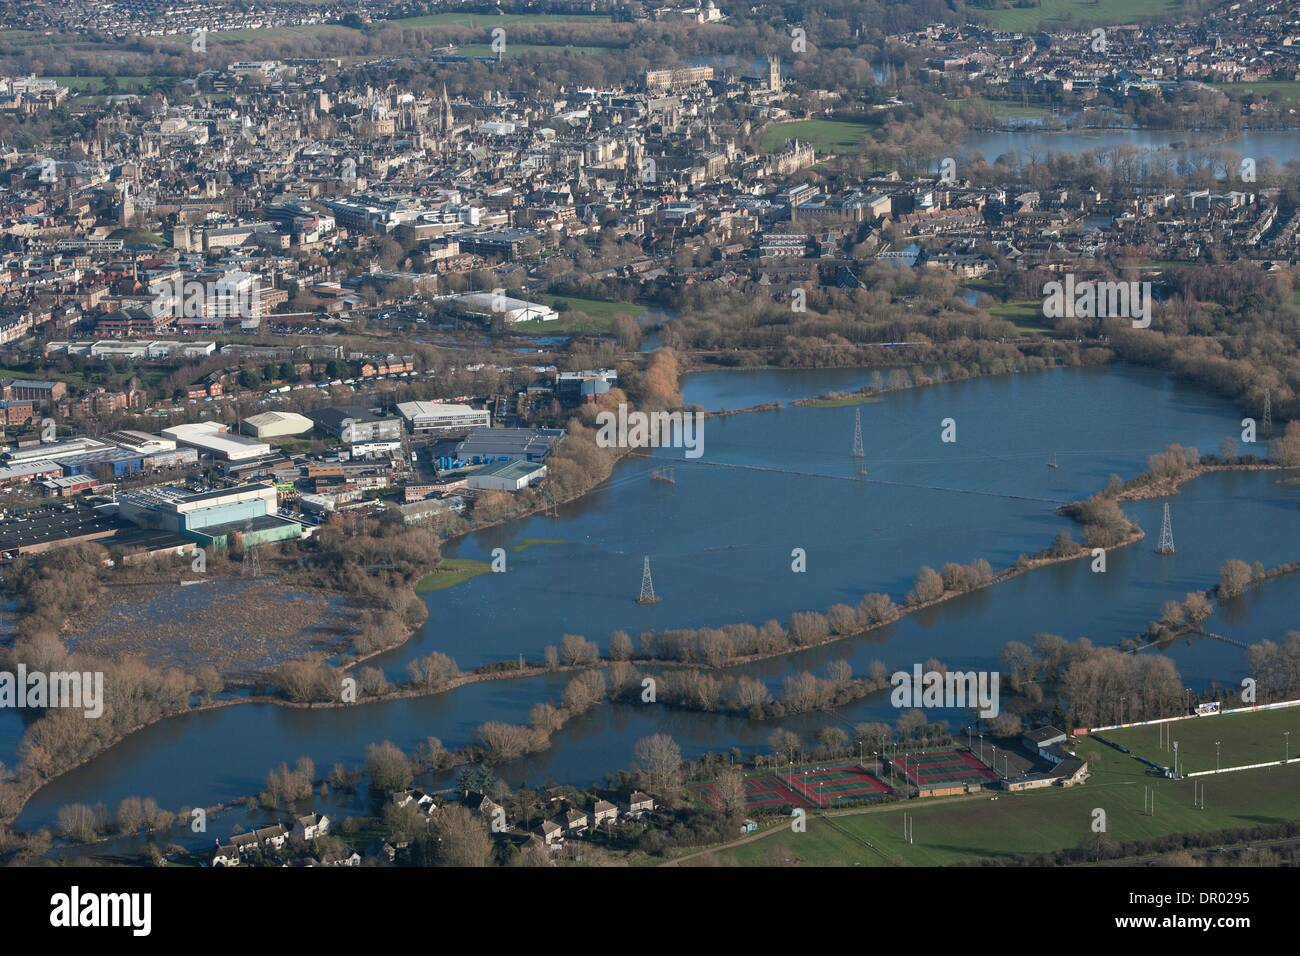 Oxford, UK. 14th January 2014. Oxford in  flood .  View from Hinksey hill towards Osney mead industrial estate LHS towards Oxford  and Oxpens  showing the Thames in flood Credit:  adrian arbib/Alamy Live News - Stock Image